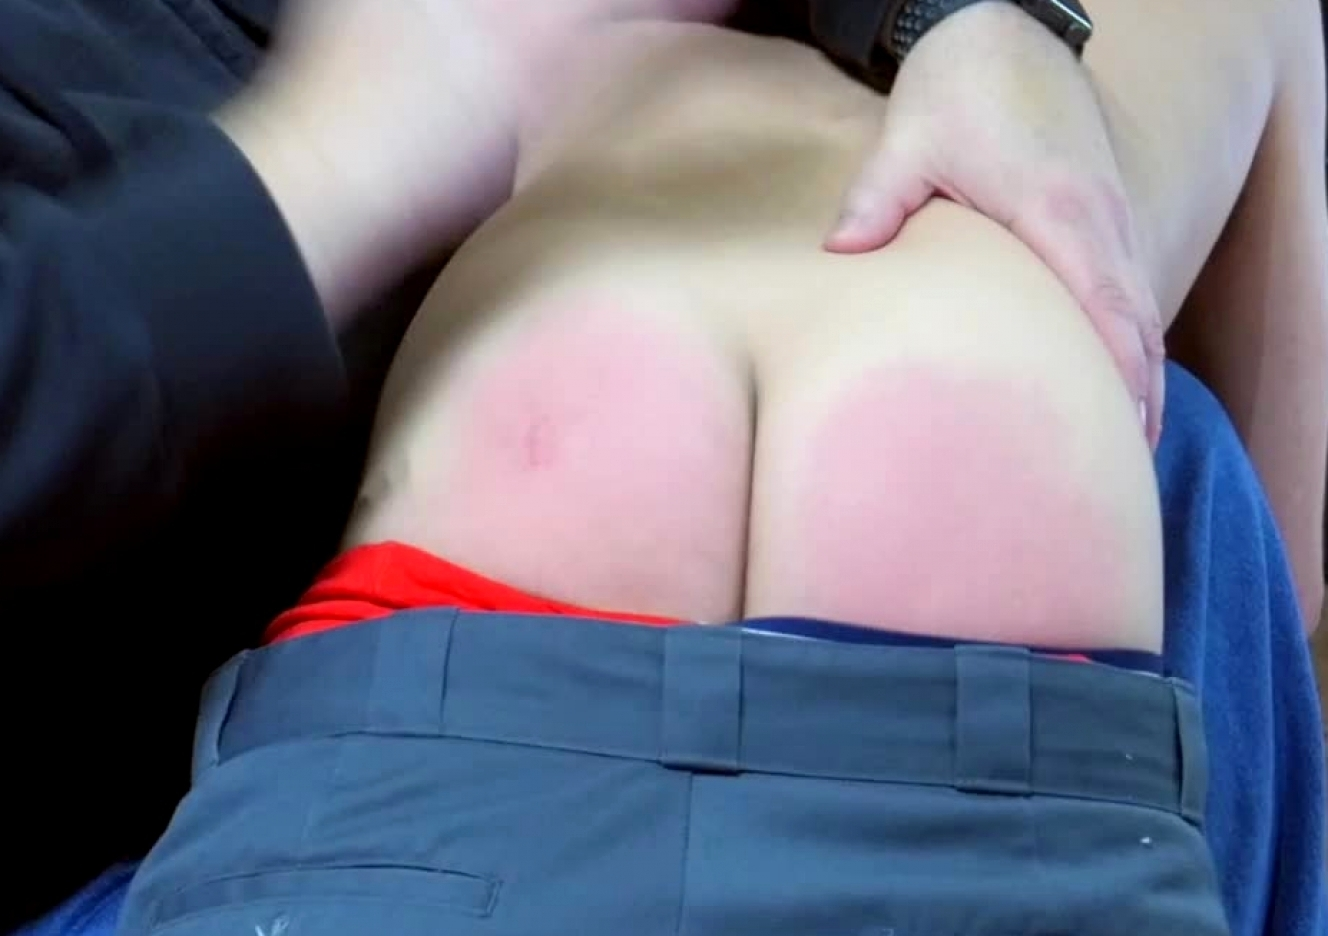 content/170916101-jacks-first-spanking/0.jpg